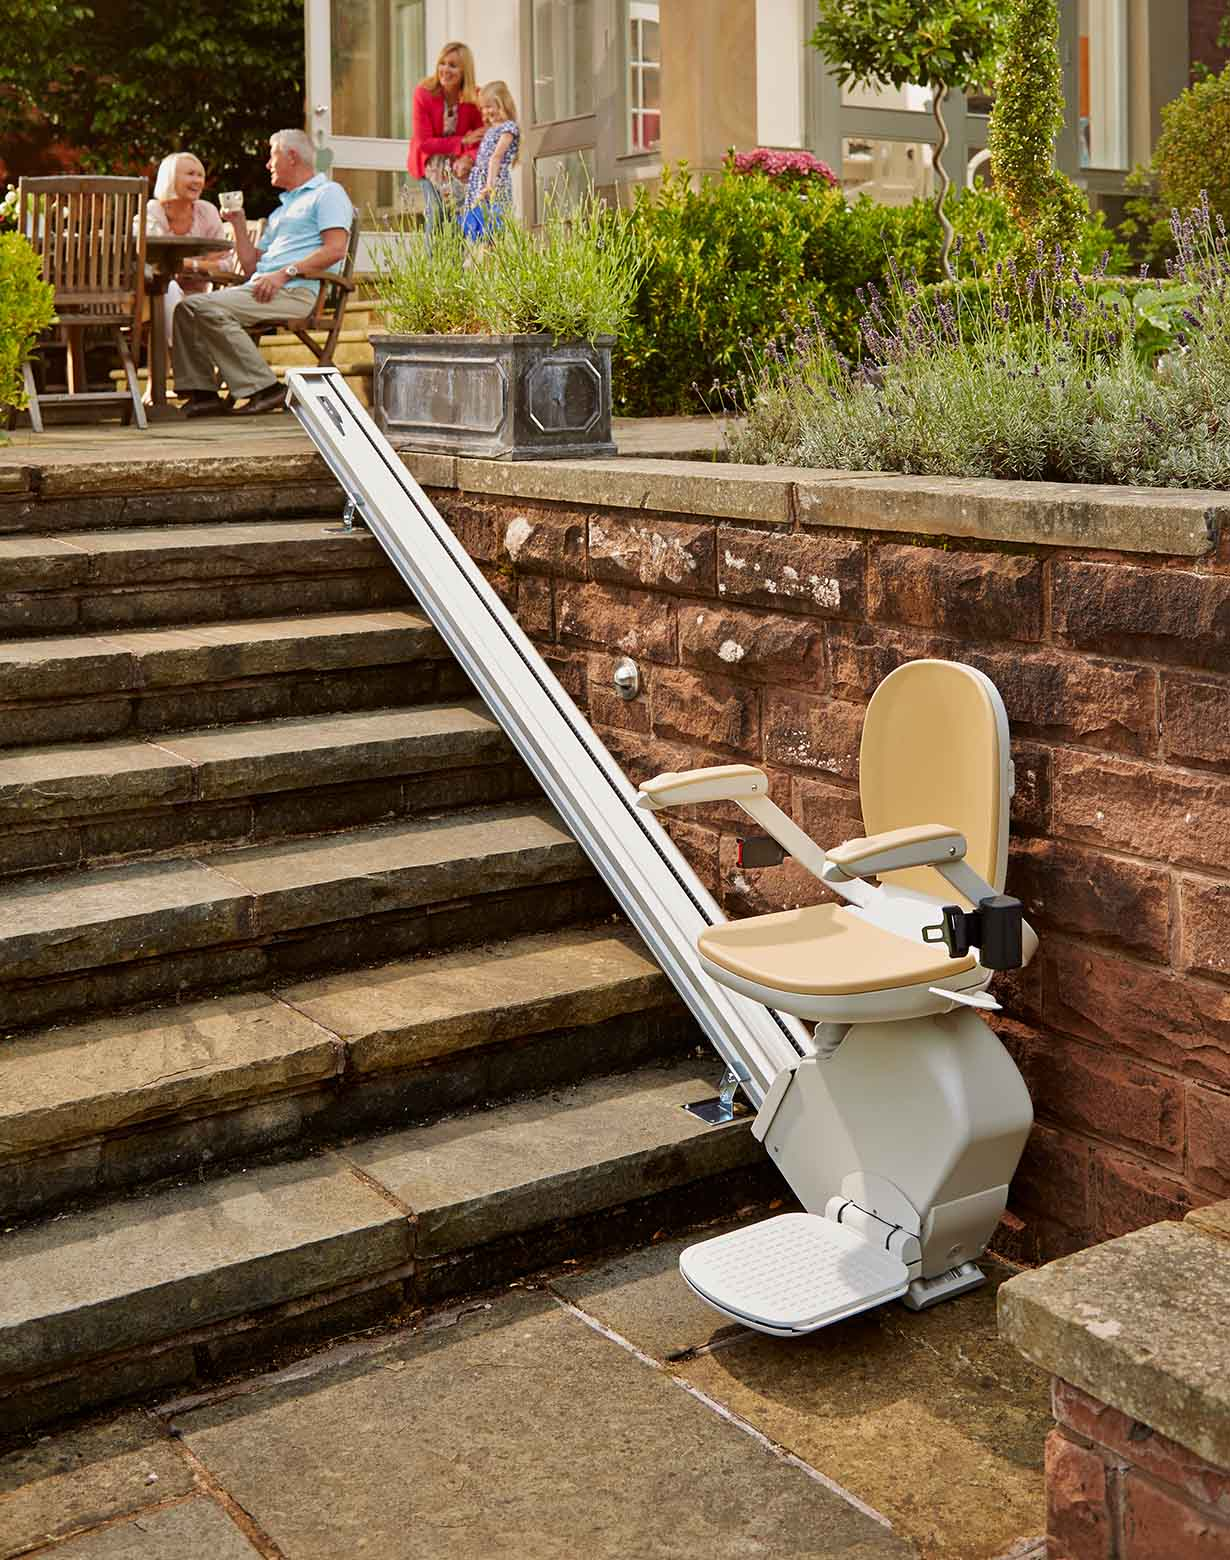 Outdoor straight stairlift to help in the garden on concrete steps